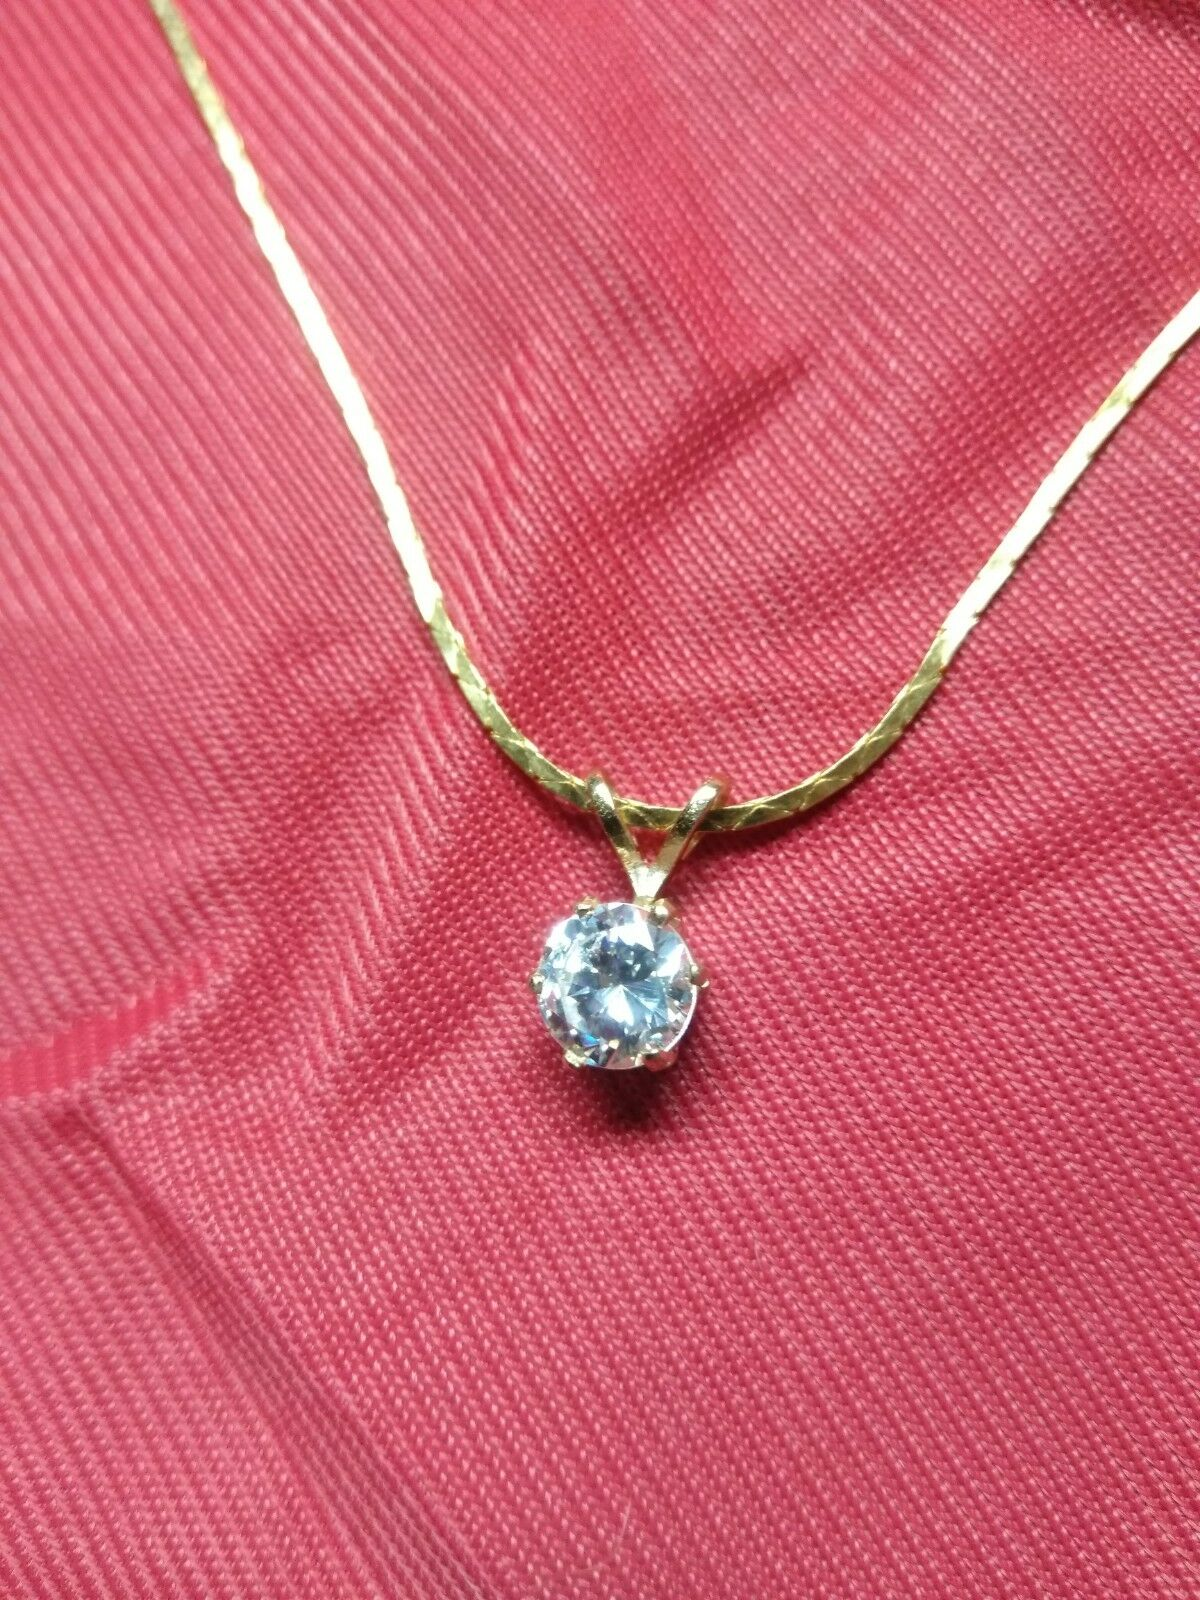 6 mm CZ Pendant 14 KY Solid gold with 16  14 KY. G.F. cobra chain  199.95